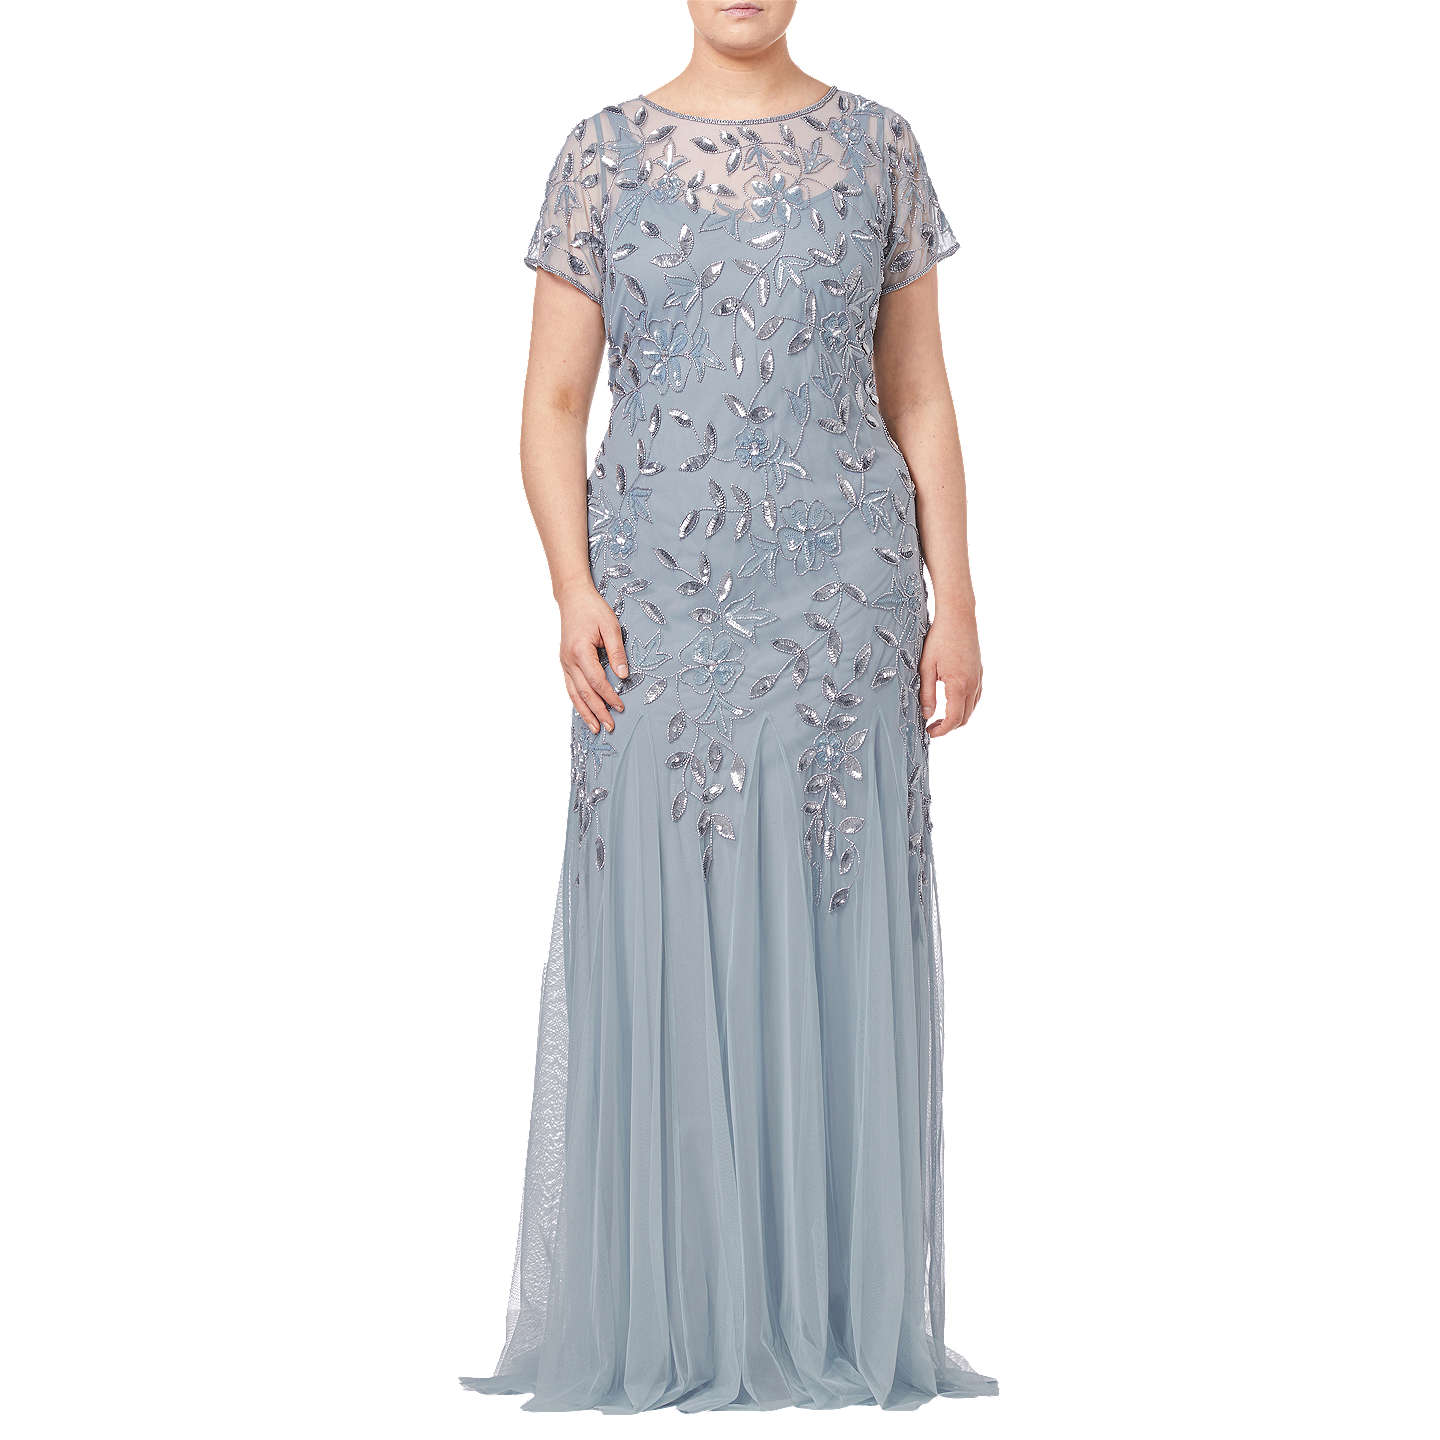 Adrianna Papell Plus Size Floral Beaded Godet Dress, Blue Heather at ...